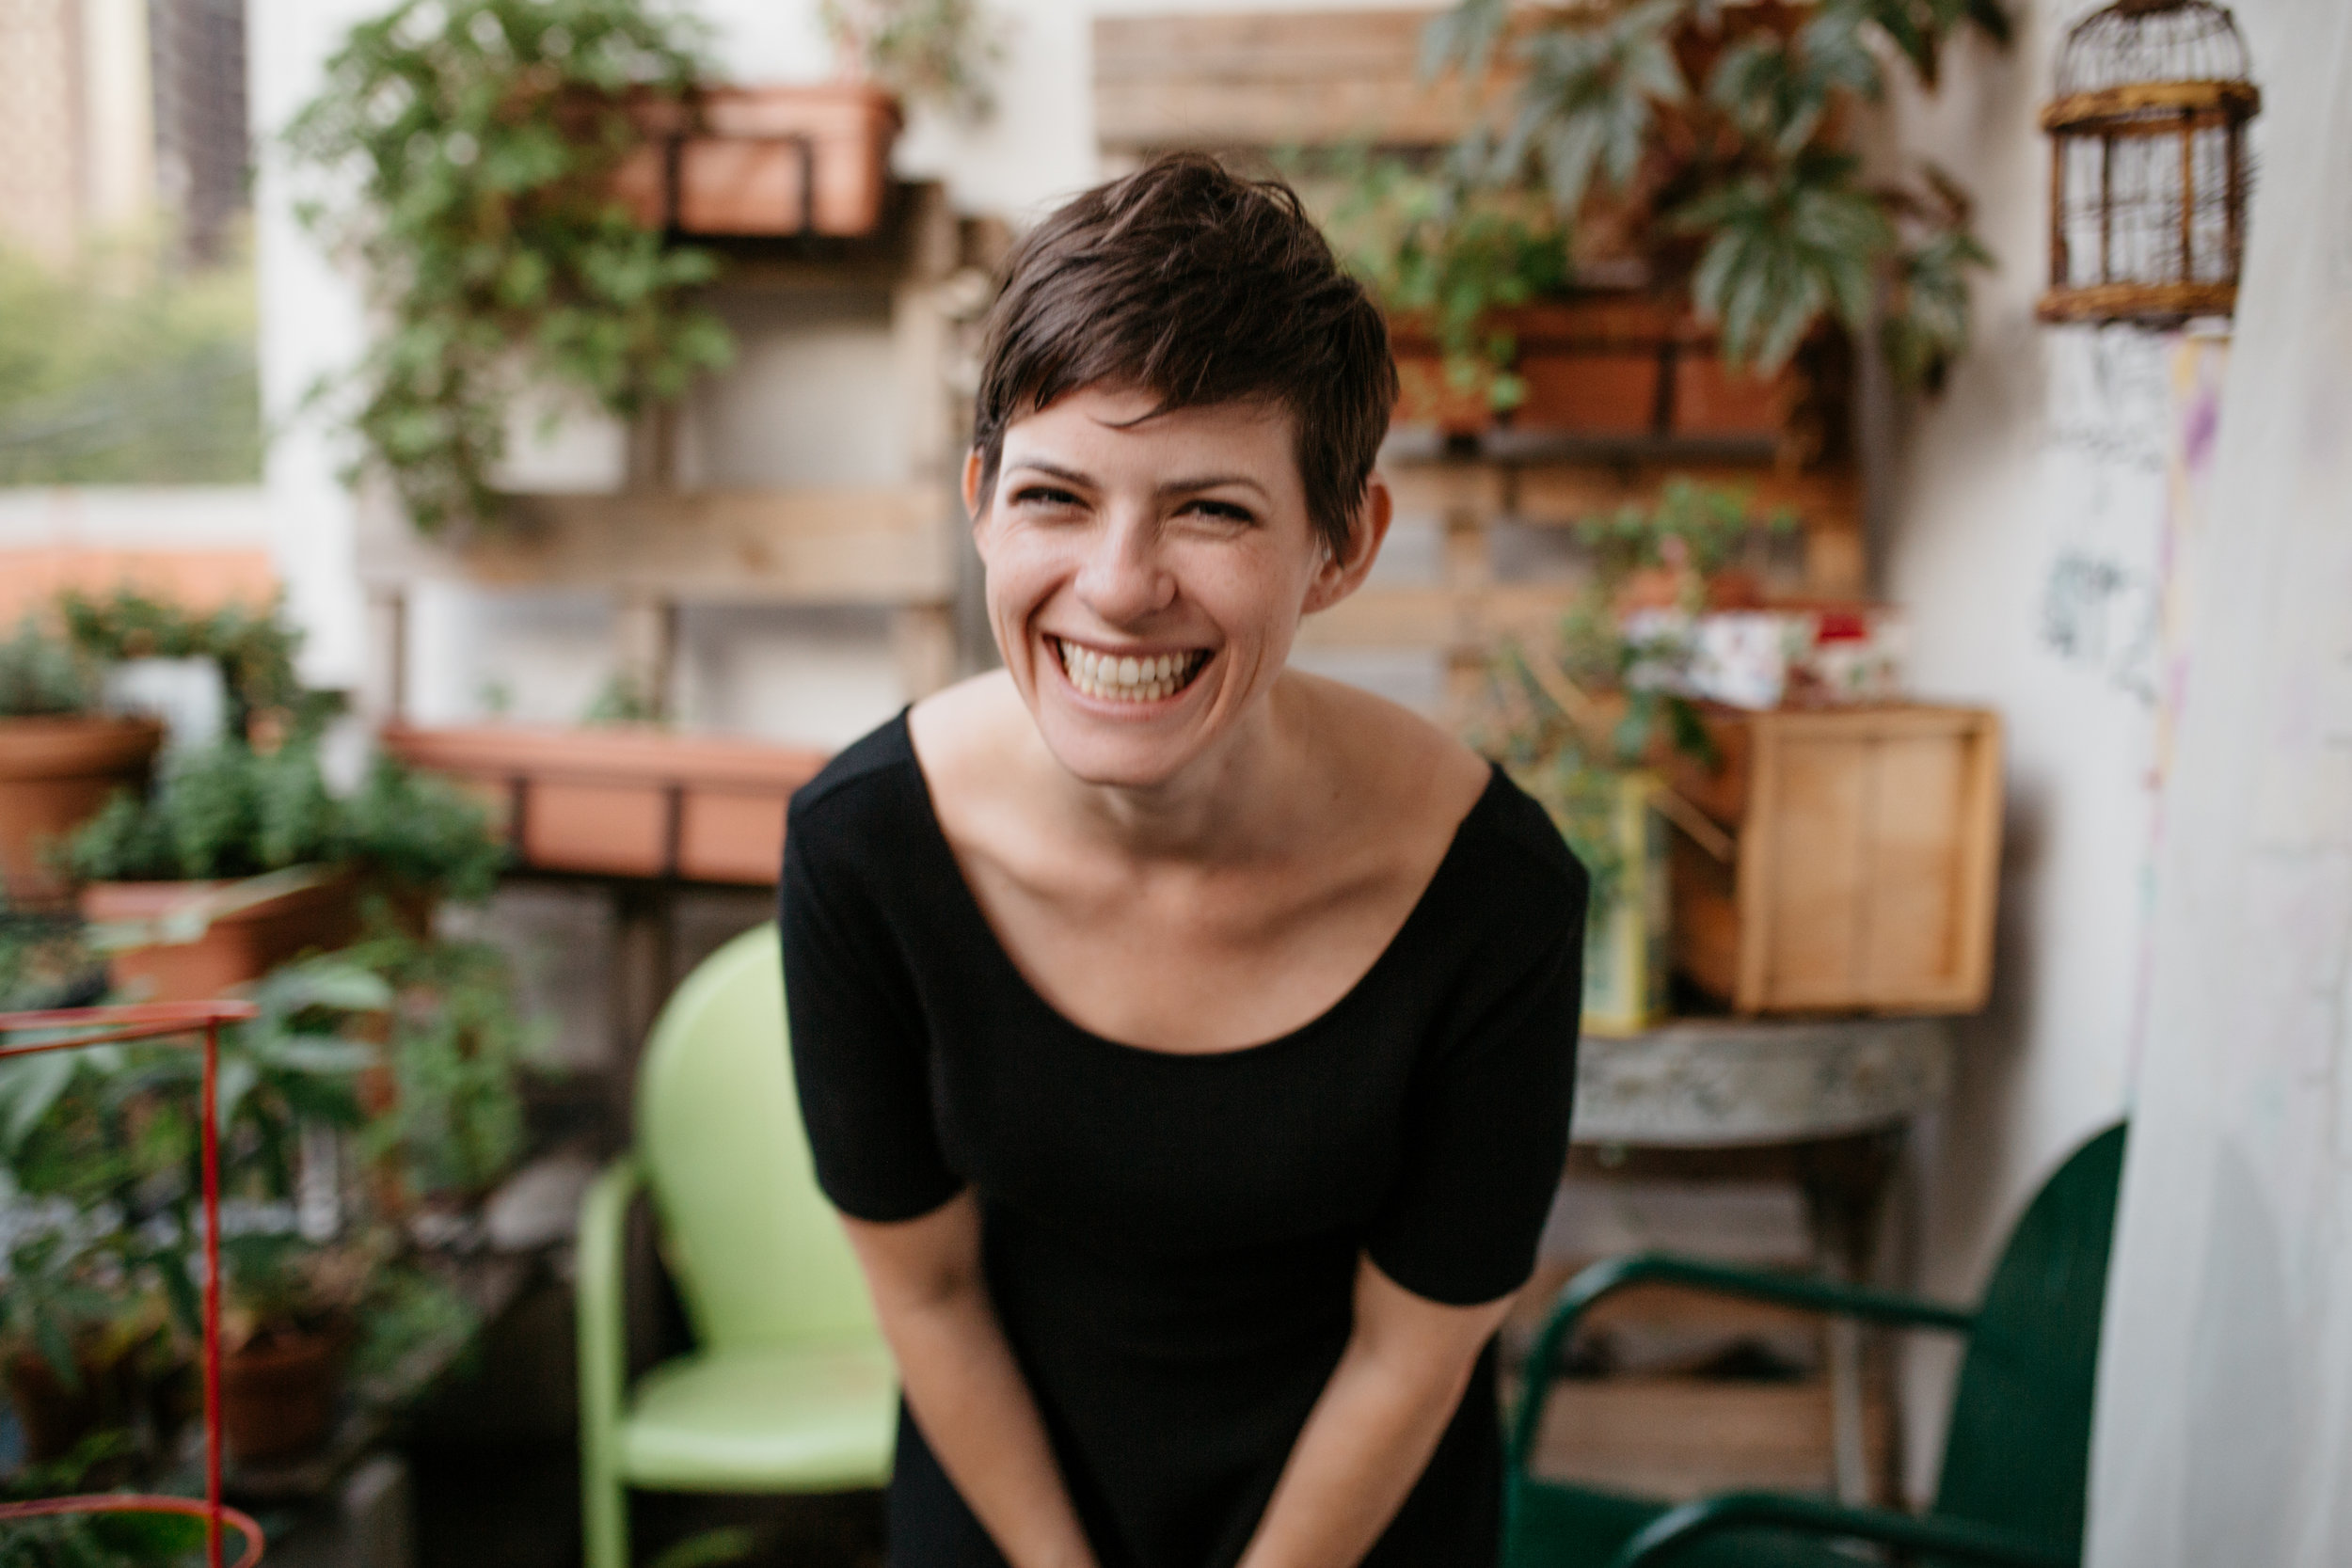 Hey there you! - I'm Caroline Cole - copy writer, voice over artist, teacher and yoga practitioner. Yep, it's a mouthful. Usually I just say I'm a storyteller. I'm obsessed with stories. Reading them. Writing them. Telling other people's stories. And helping others tell their OWN stories.